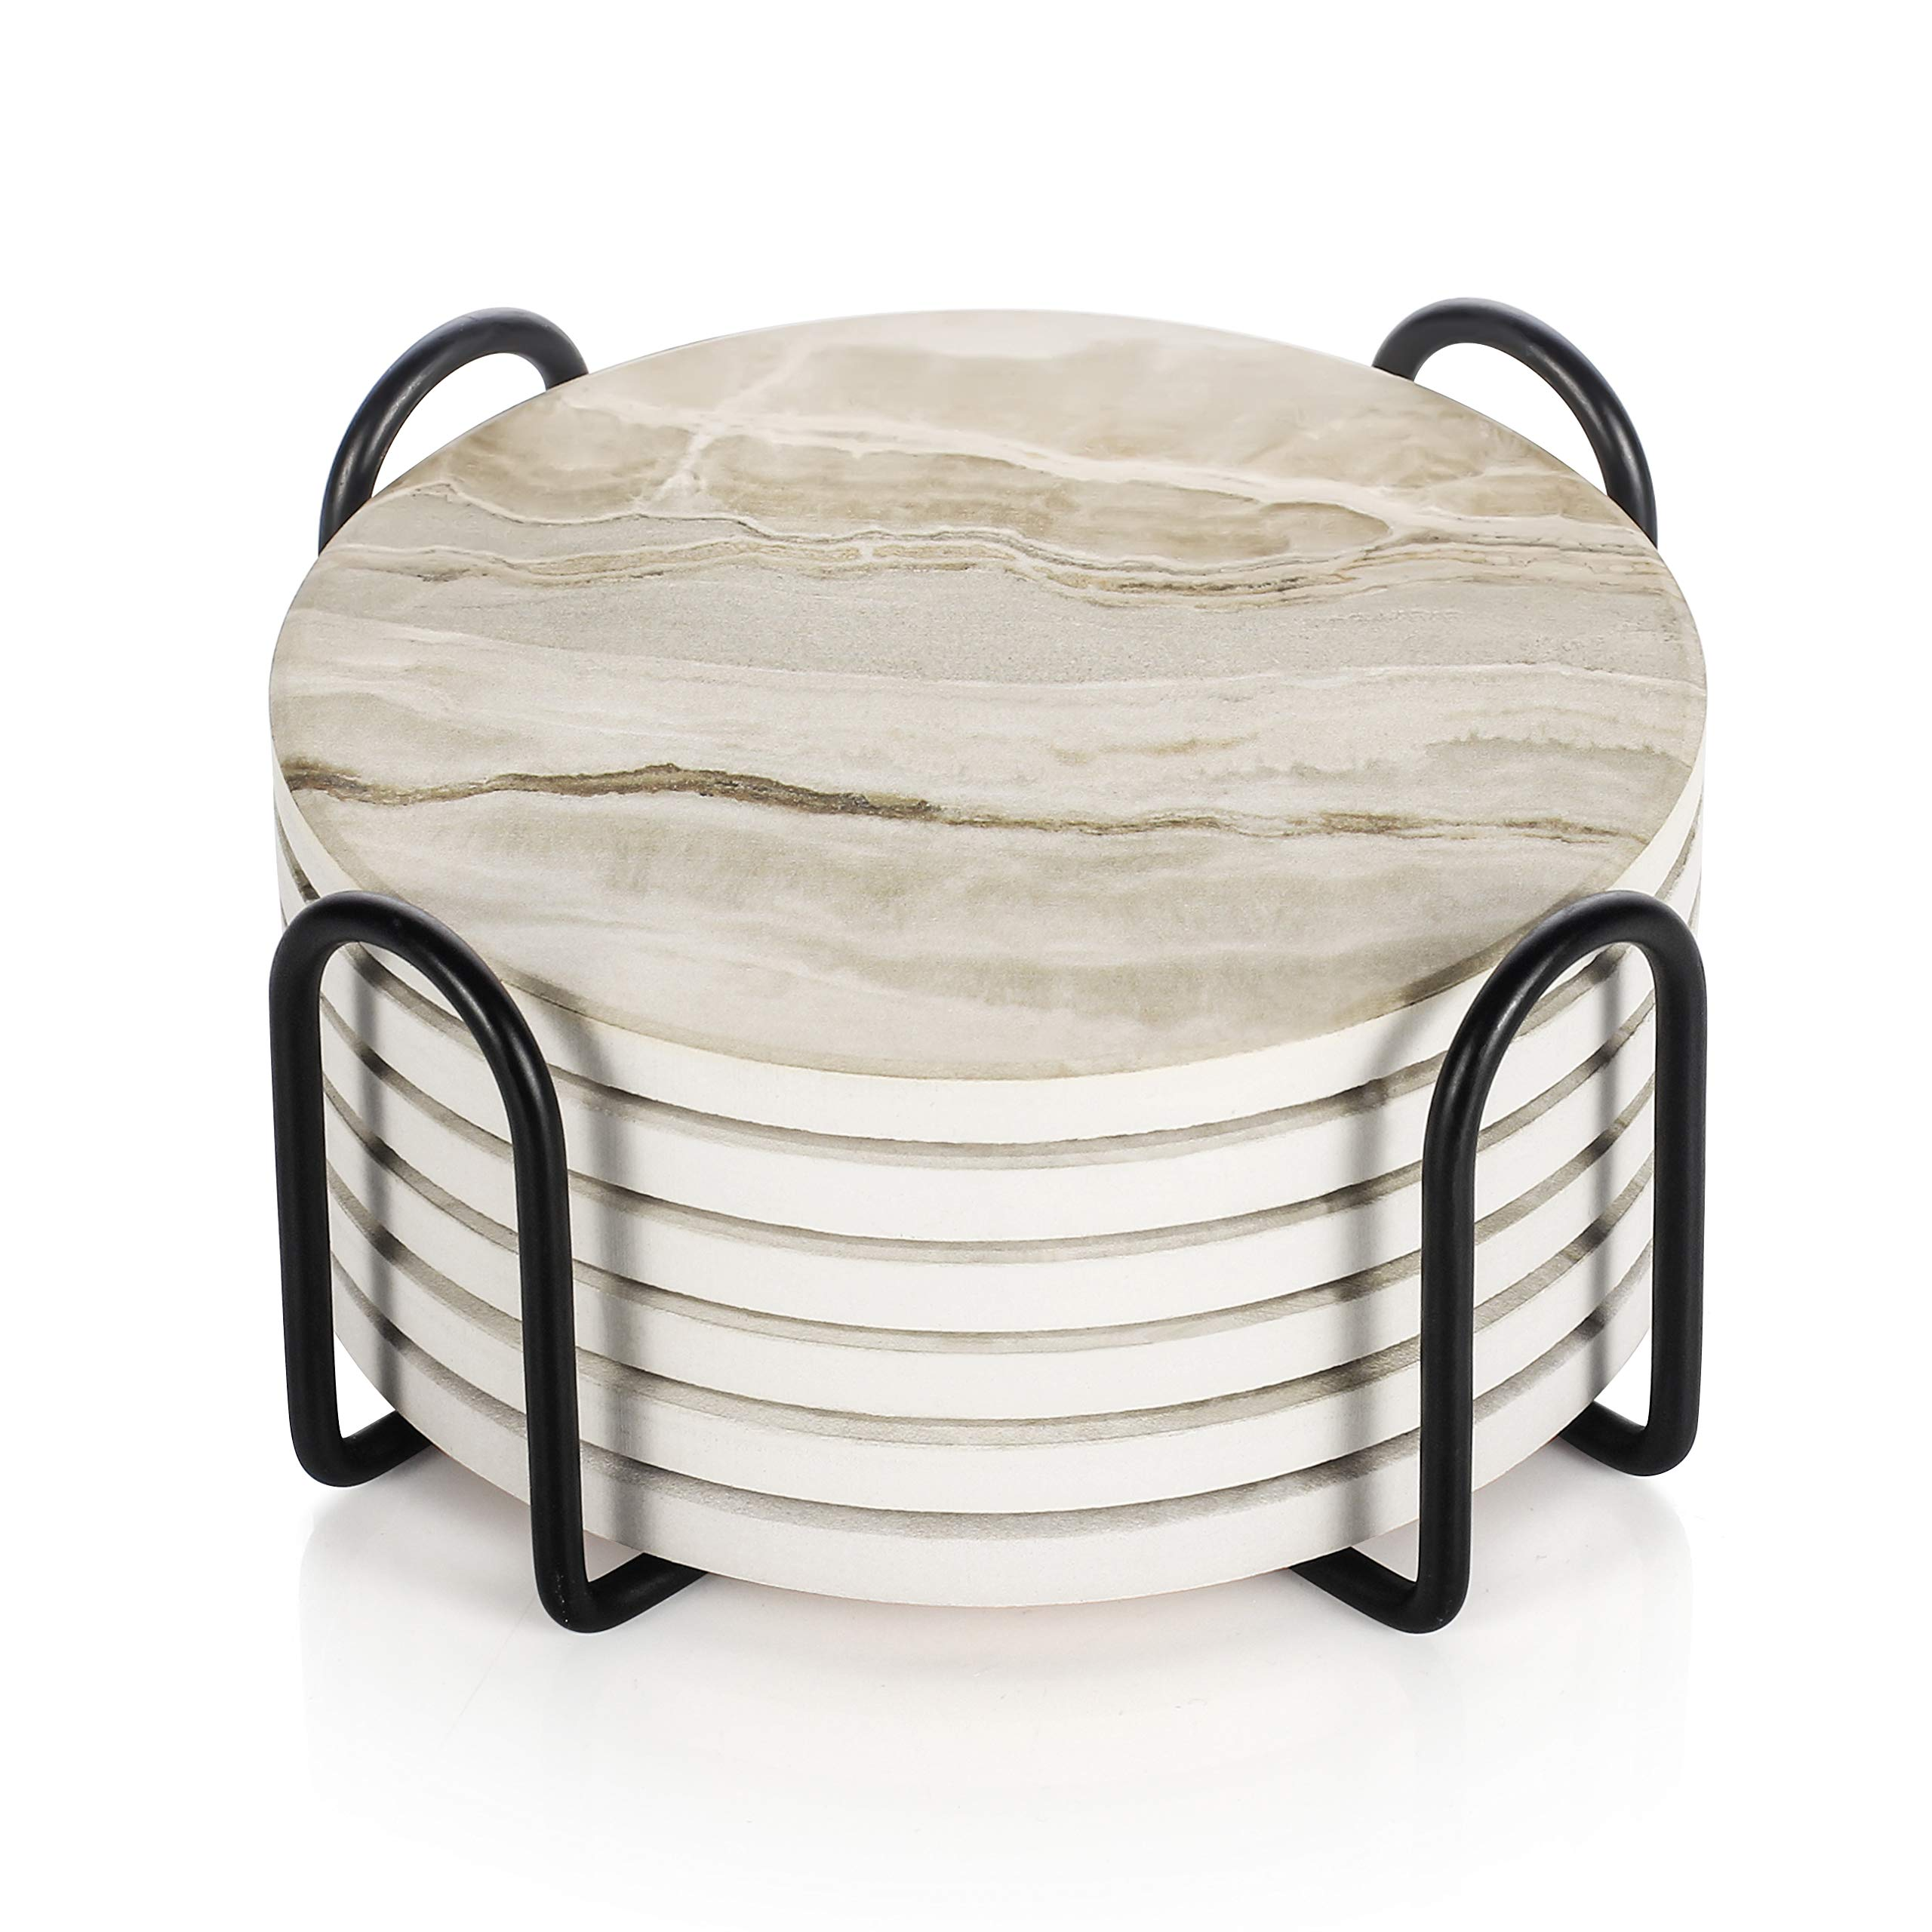 LIFVER Drink Coasters with Holder, Marble Style Absorbent Coaster Sets, Avoid Furniture Being Scratched and Soiled, Suitable for Kinds of Cups, 4 Inches, Set of 6